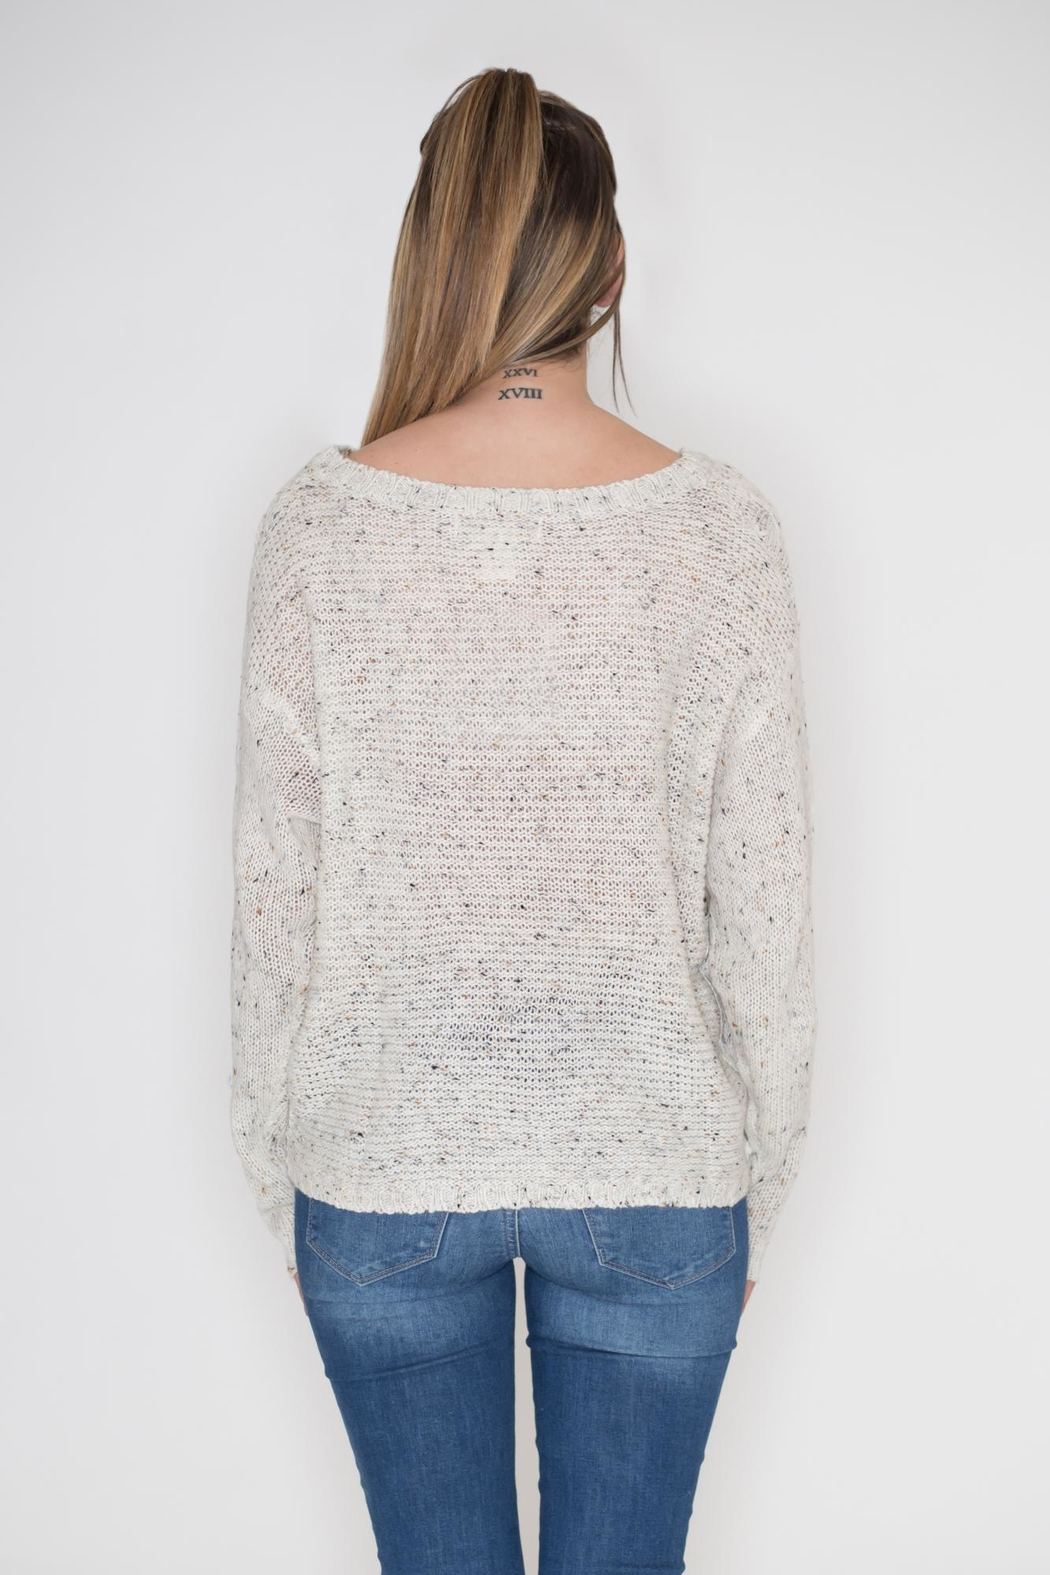 Flying Tomato Lace Panel Sweater - Side Cropped Image